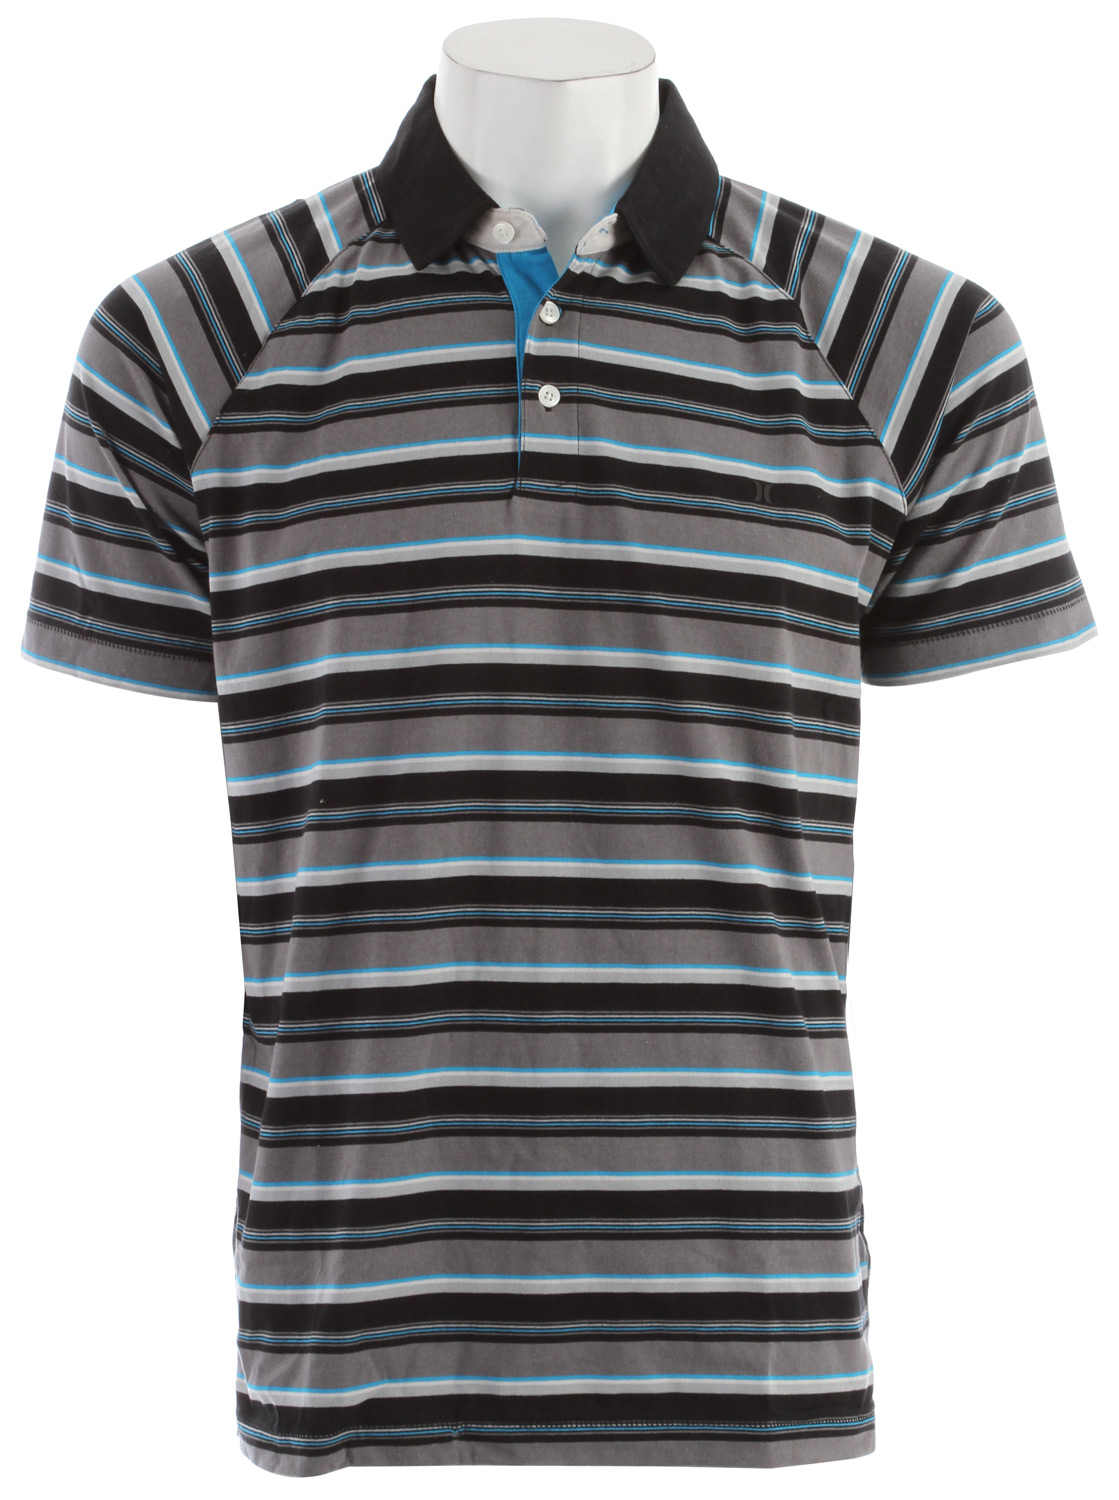 Surf Hurley Only Polo Black - $23.95